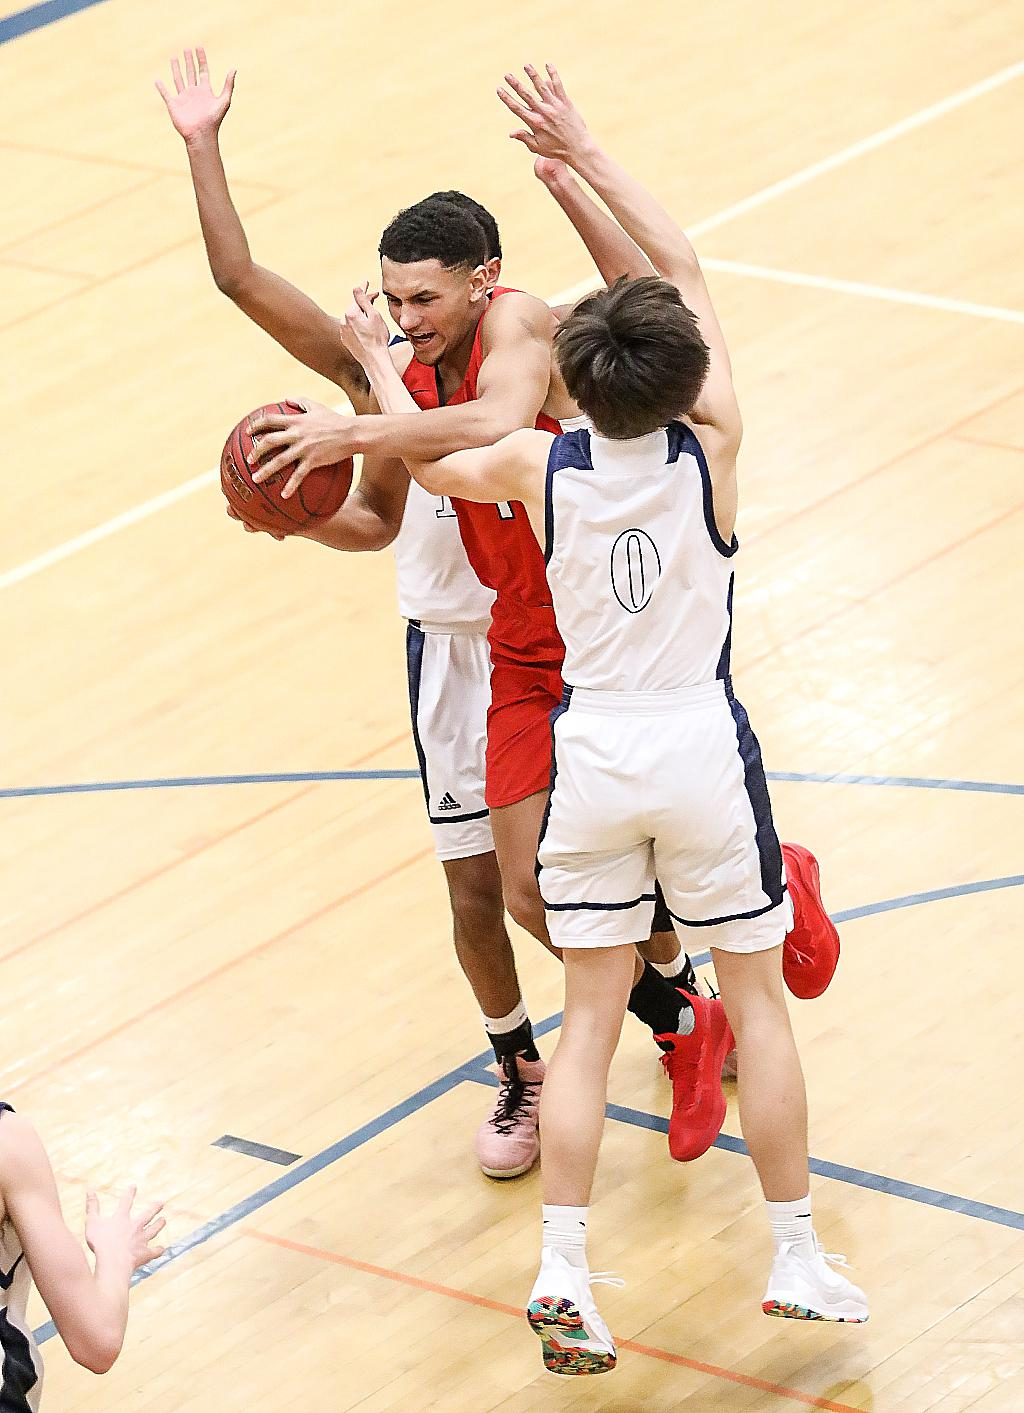 Jalen Suggs gets caught between two defenders. Despite the double-team effort, Suggs scored 18 points helping the Redhawks earn another trip to next week's Class 2A state tournament. Photo by Cheryl Myers, SportsEngine